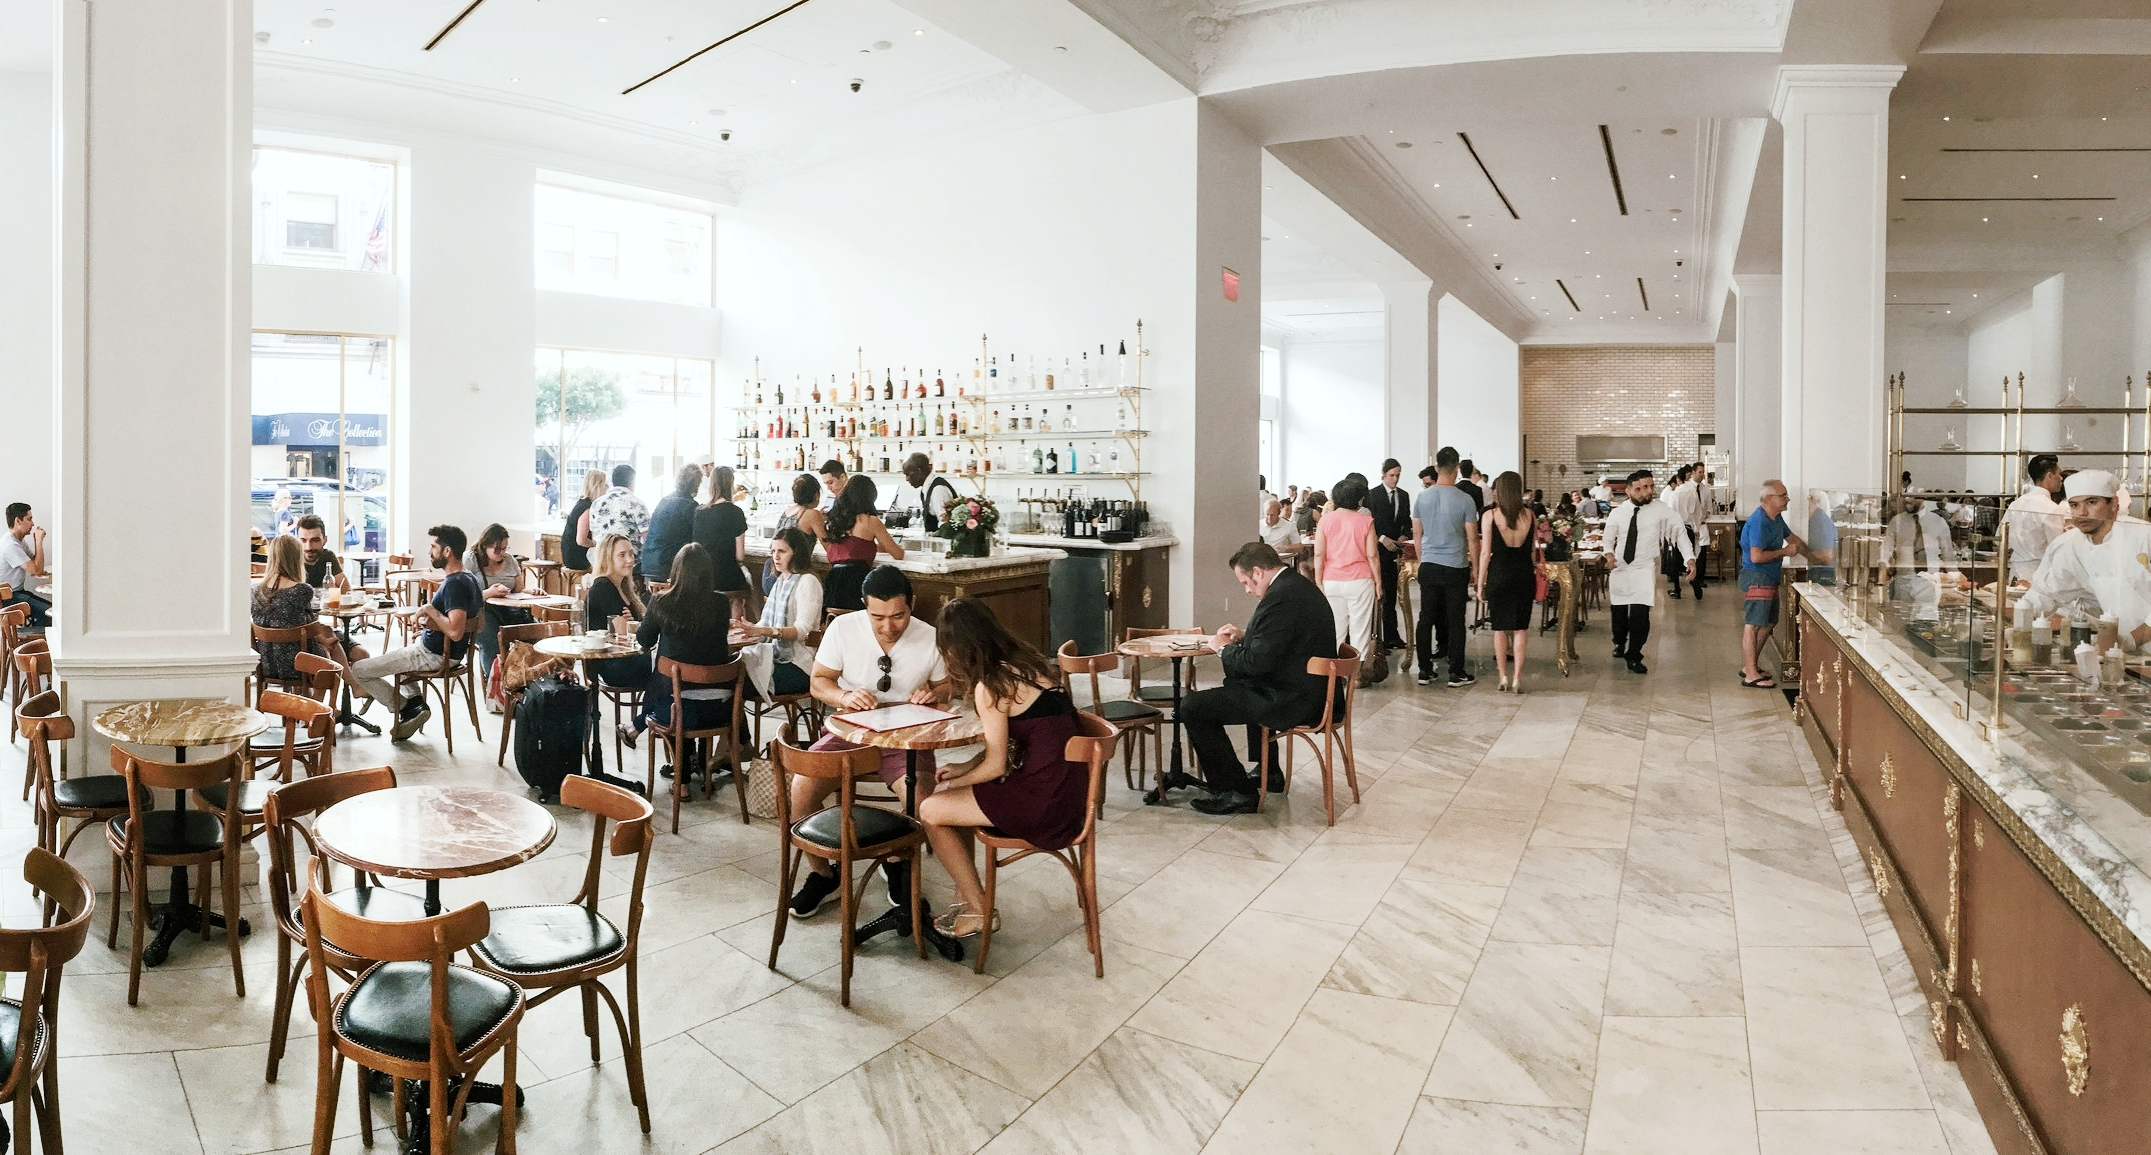 The bar, Bottega Louie, Downtown Los Angeles